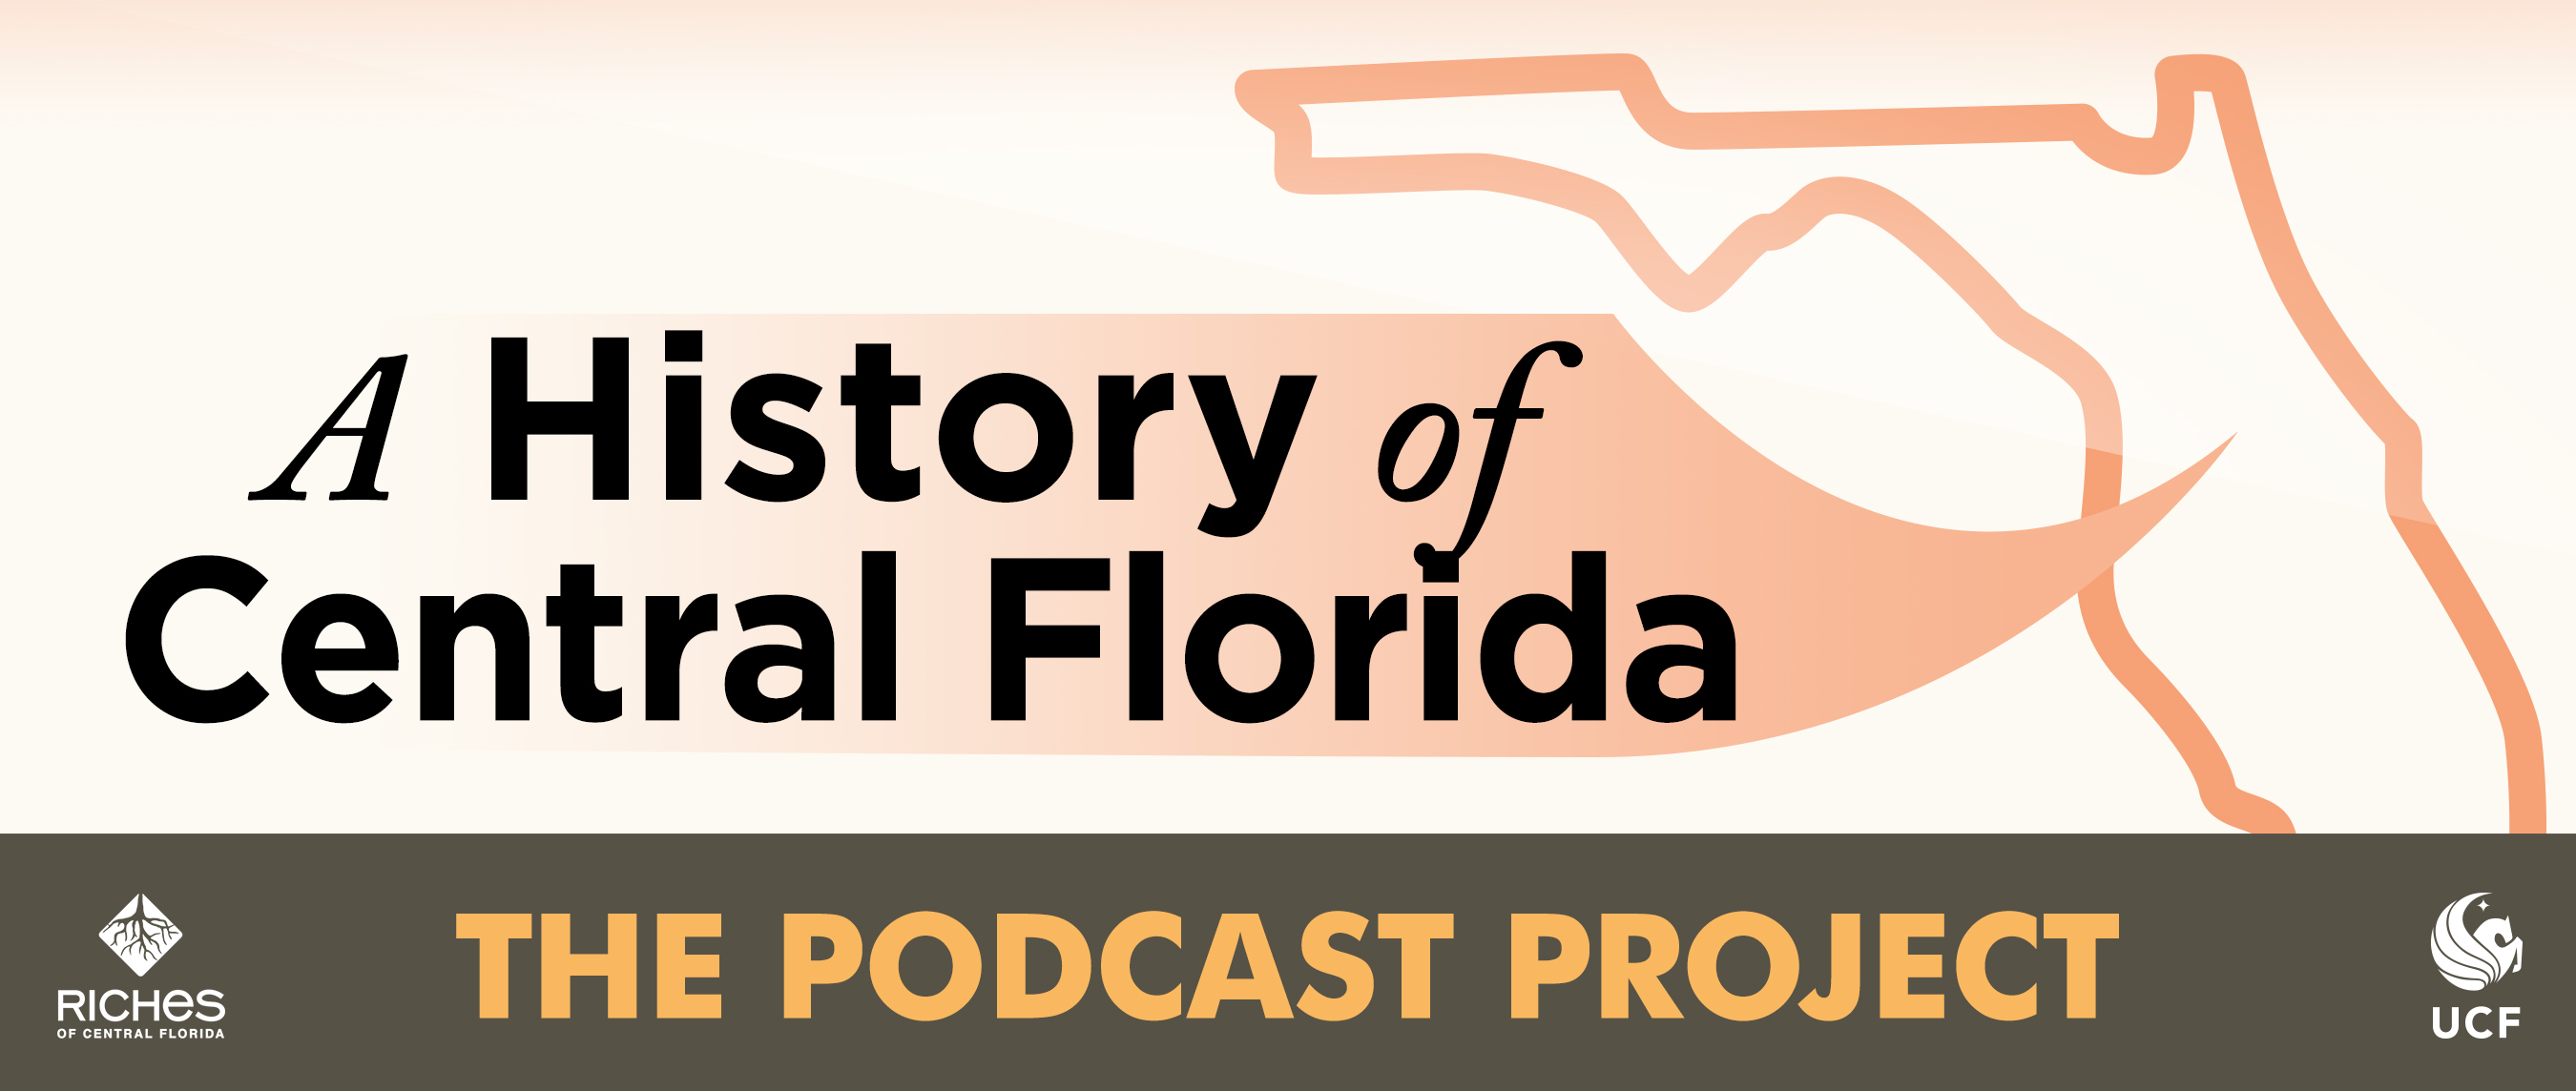 A History of Central Florida: Podcast Project Main Page